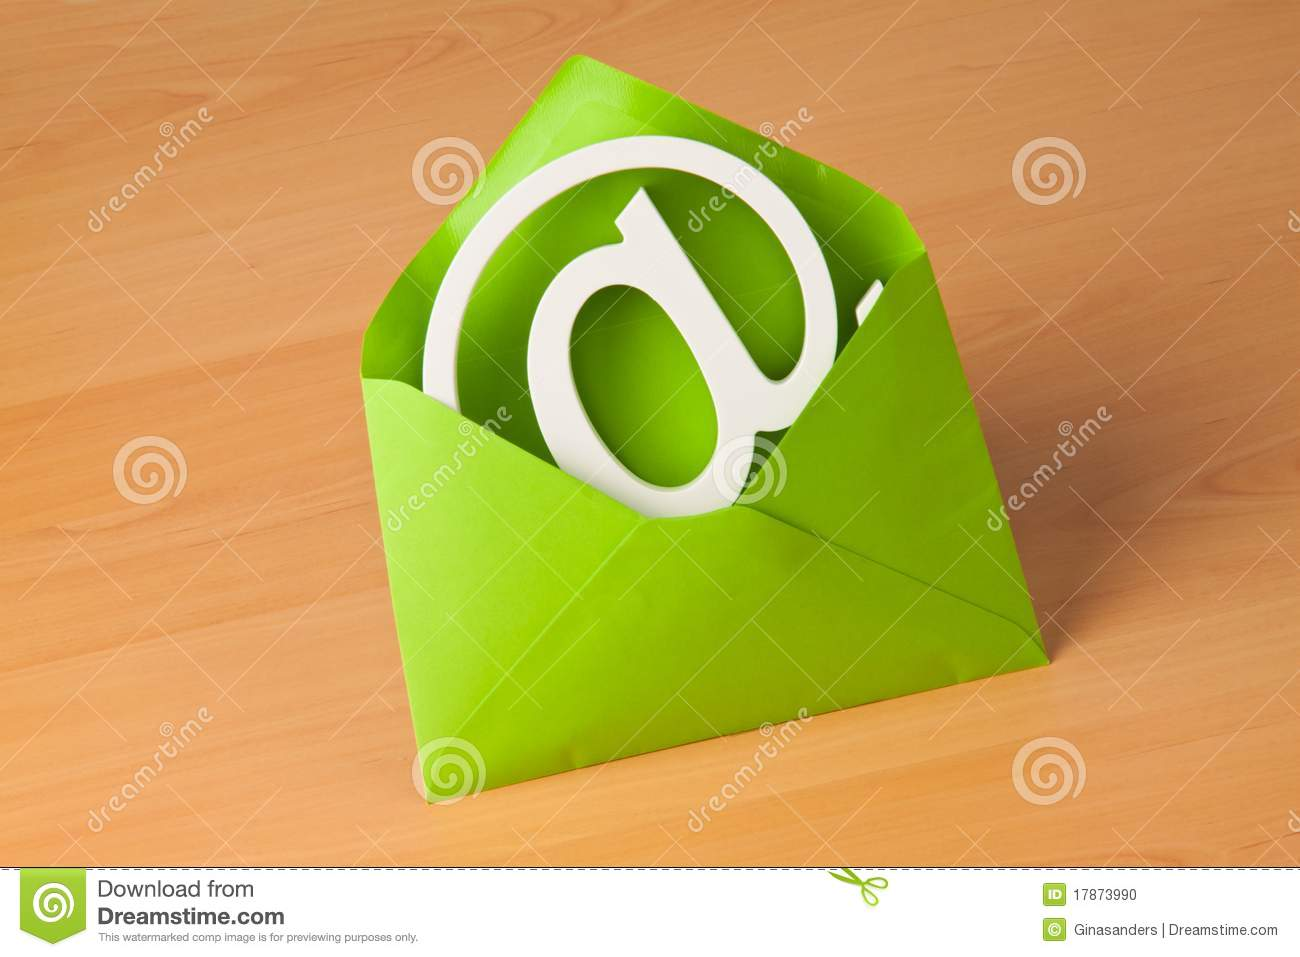 E-mail logo in an envelope